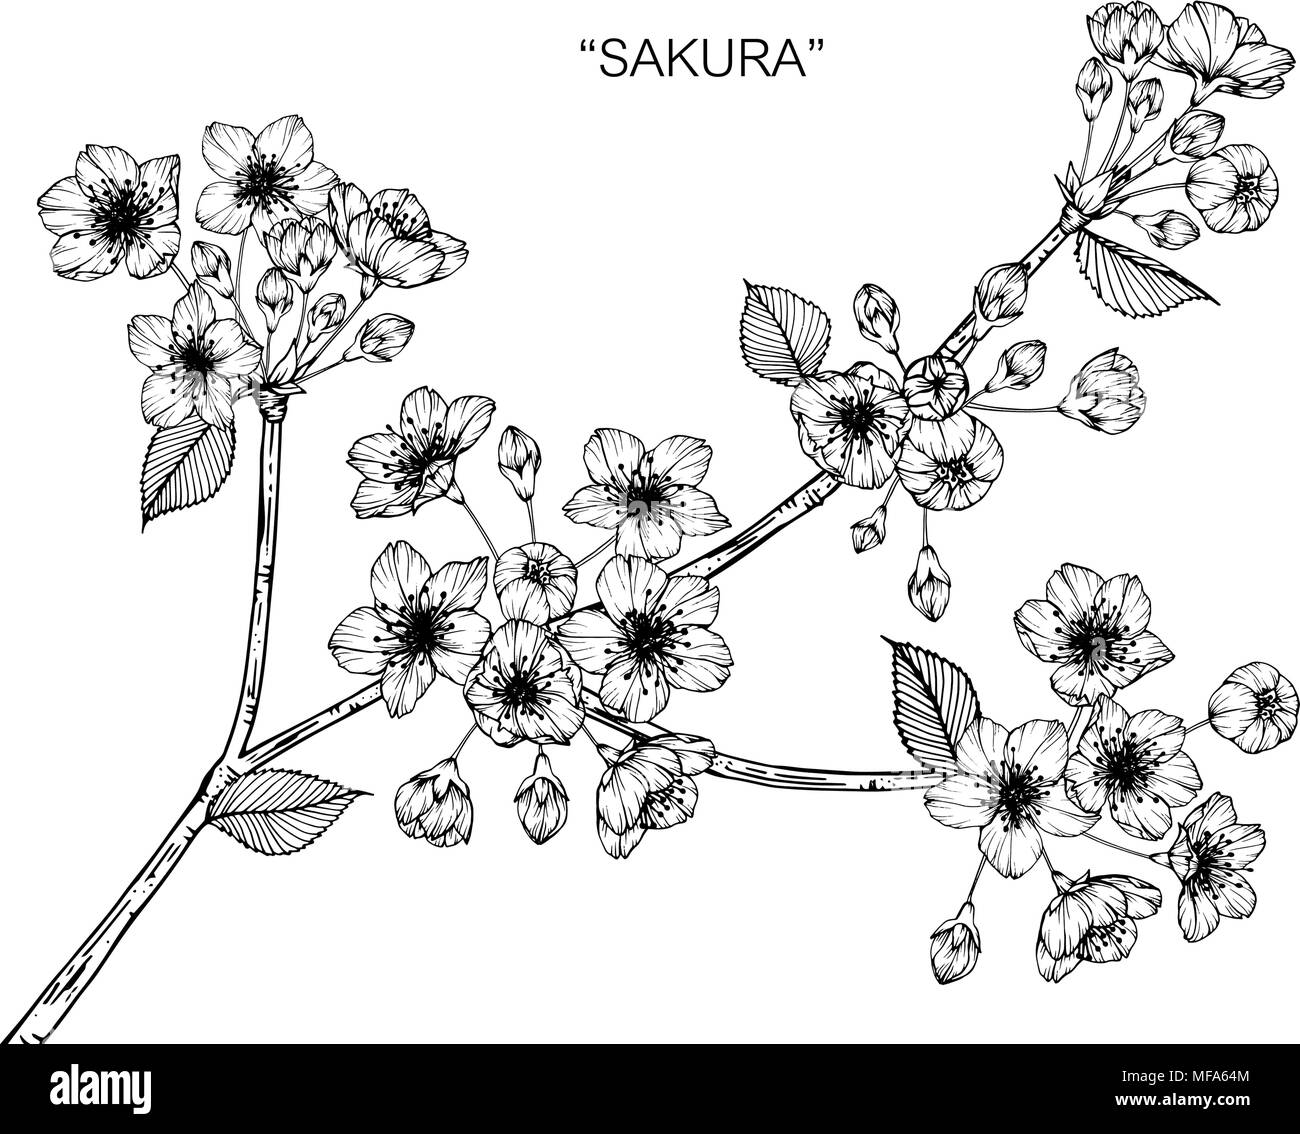 Sakura Flower Drawing Illustration Black And White With Line Art On